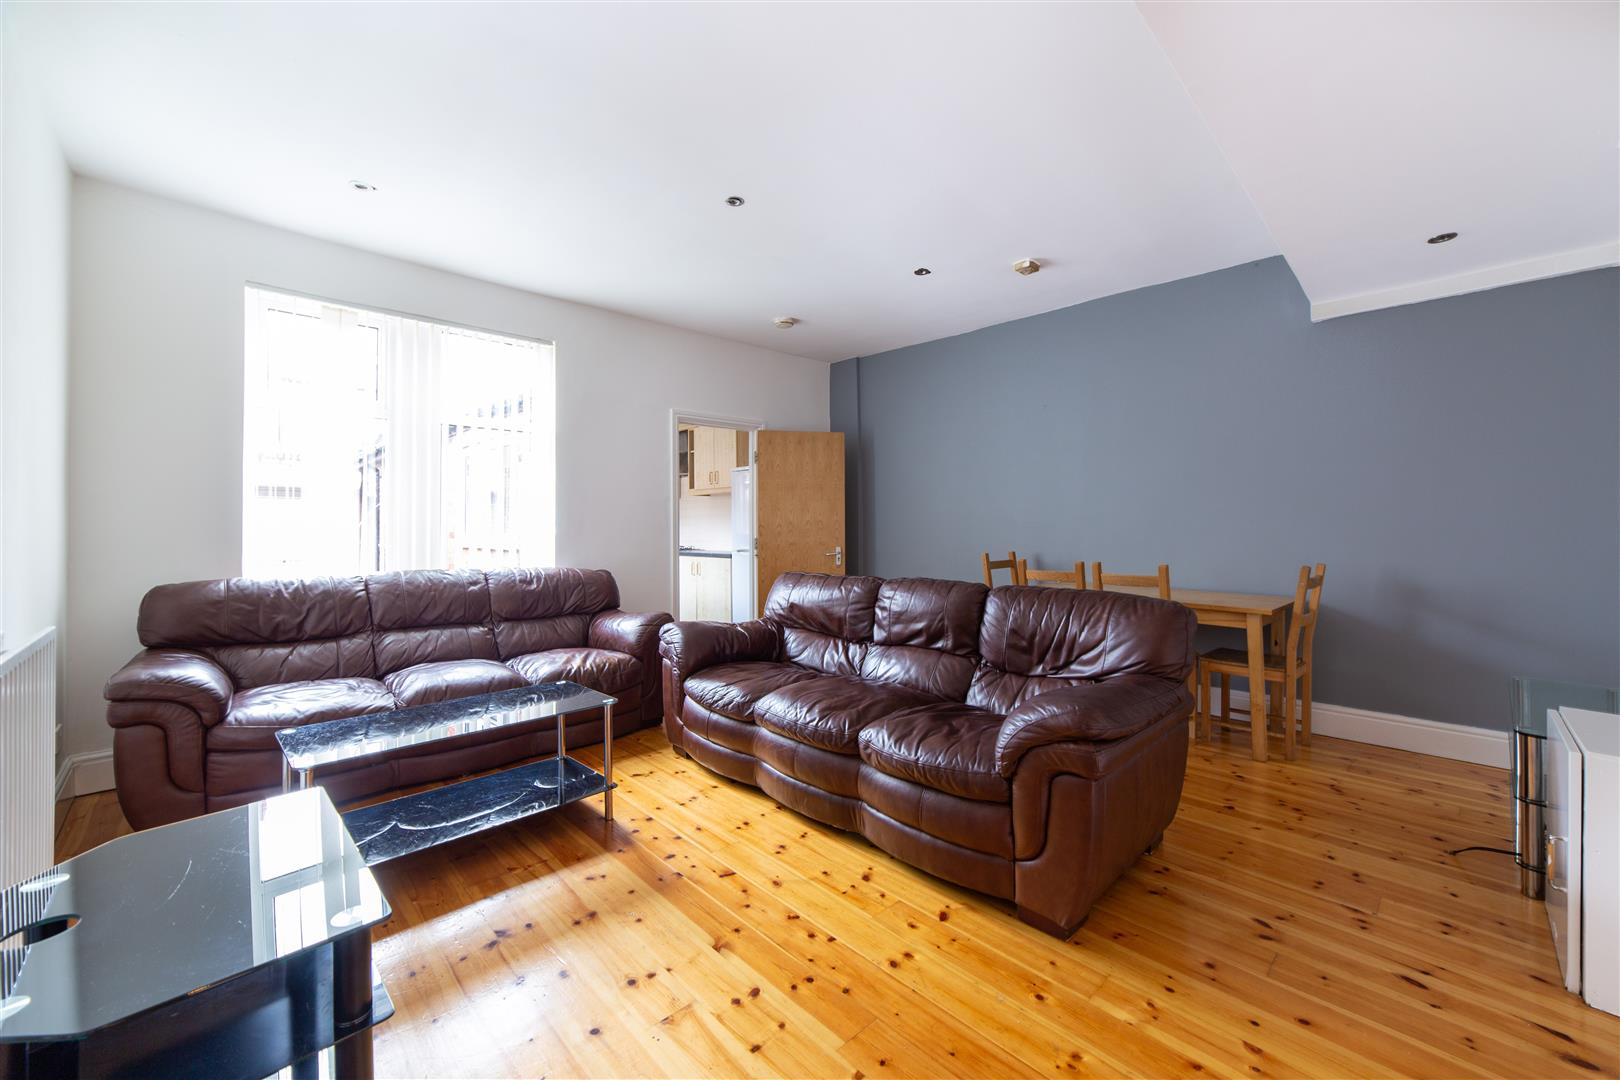 5 bed terraced house to rent in Newcastle Upon Tyne, NE6 5SN  - Property Image 3